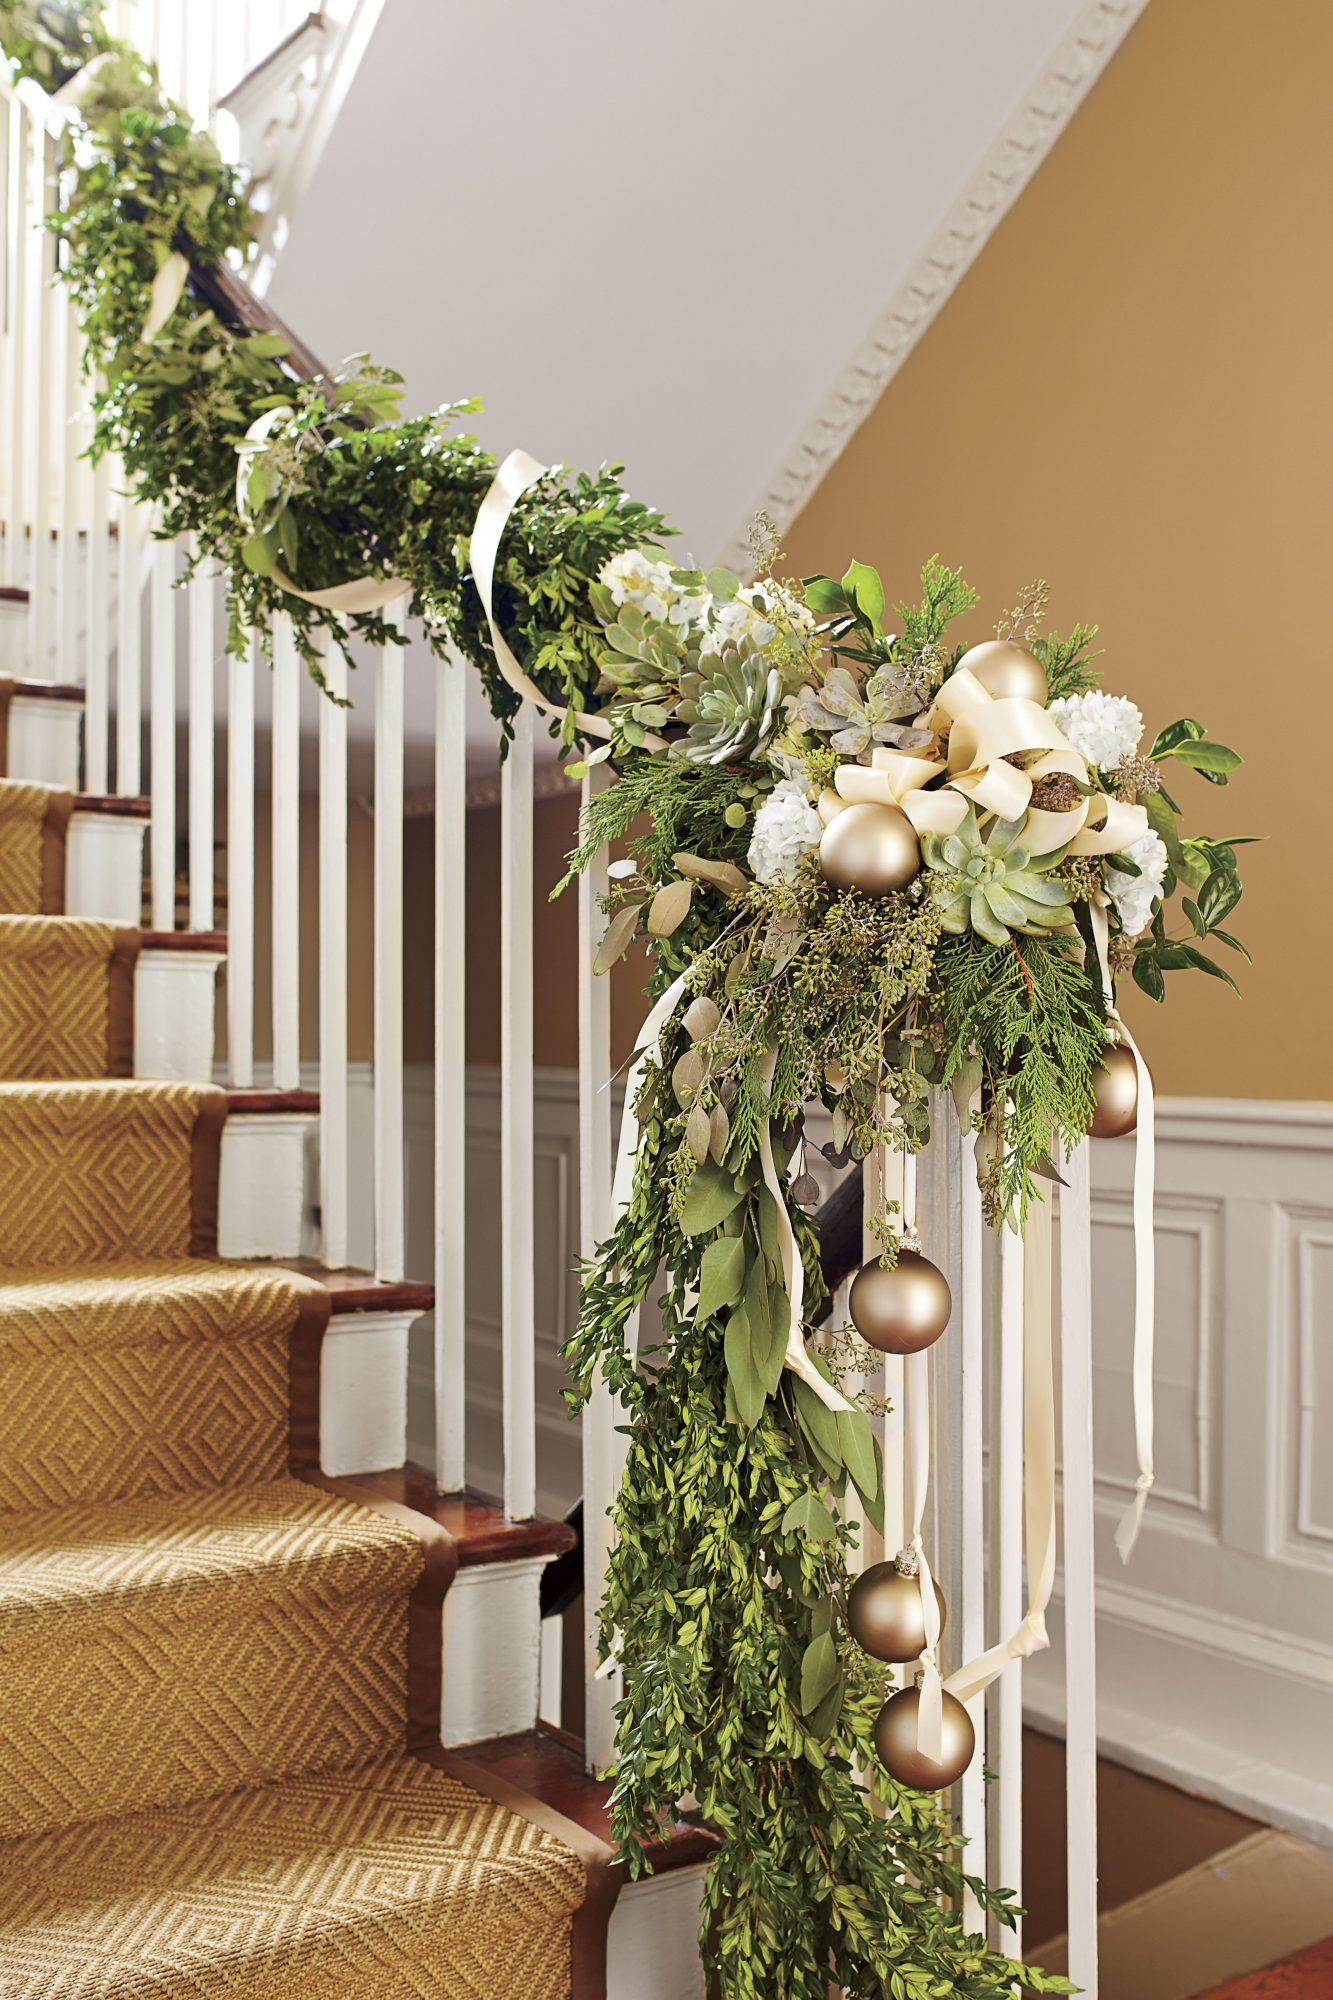 Boxwood Garland Stairs with Flowers and Ornaments